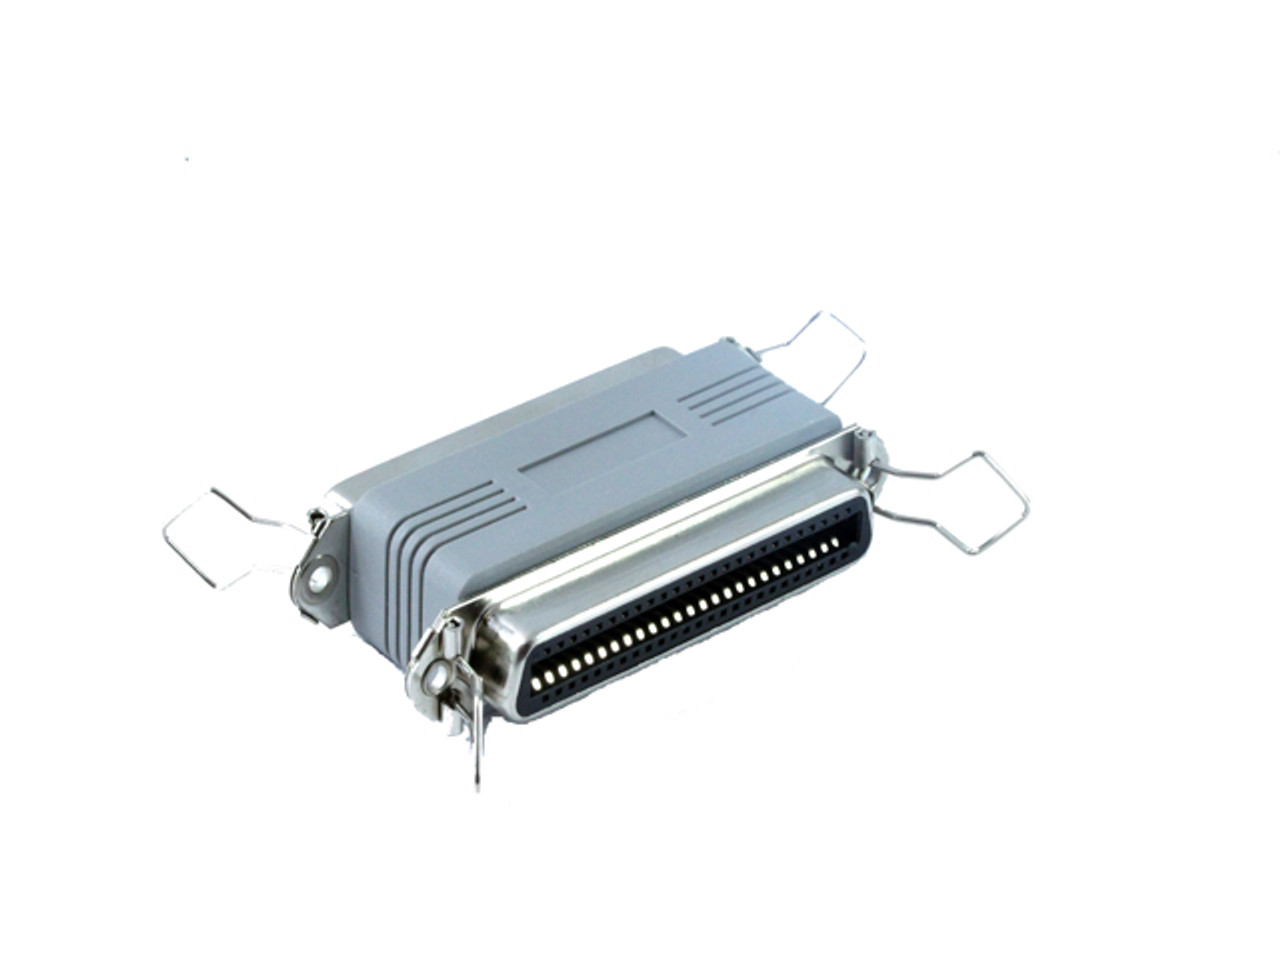 Product image for Centronic 50F/F Gender Changer   CX Computer Superstore